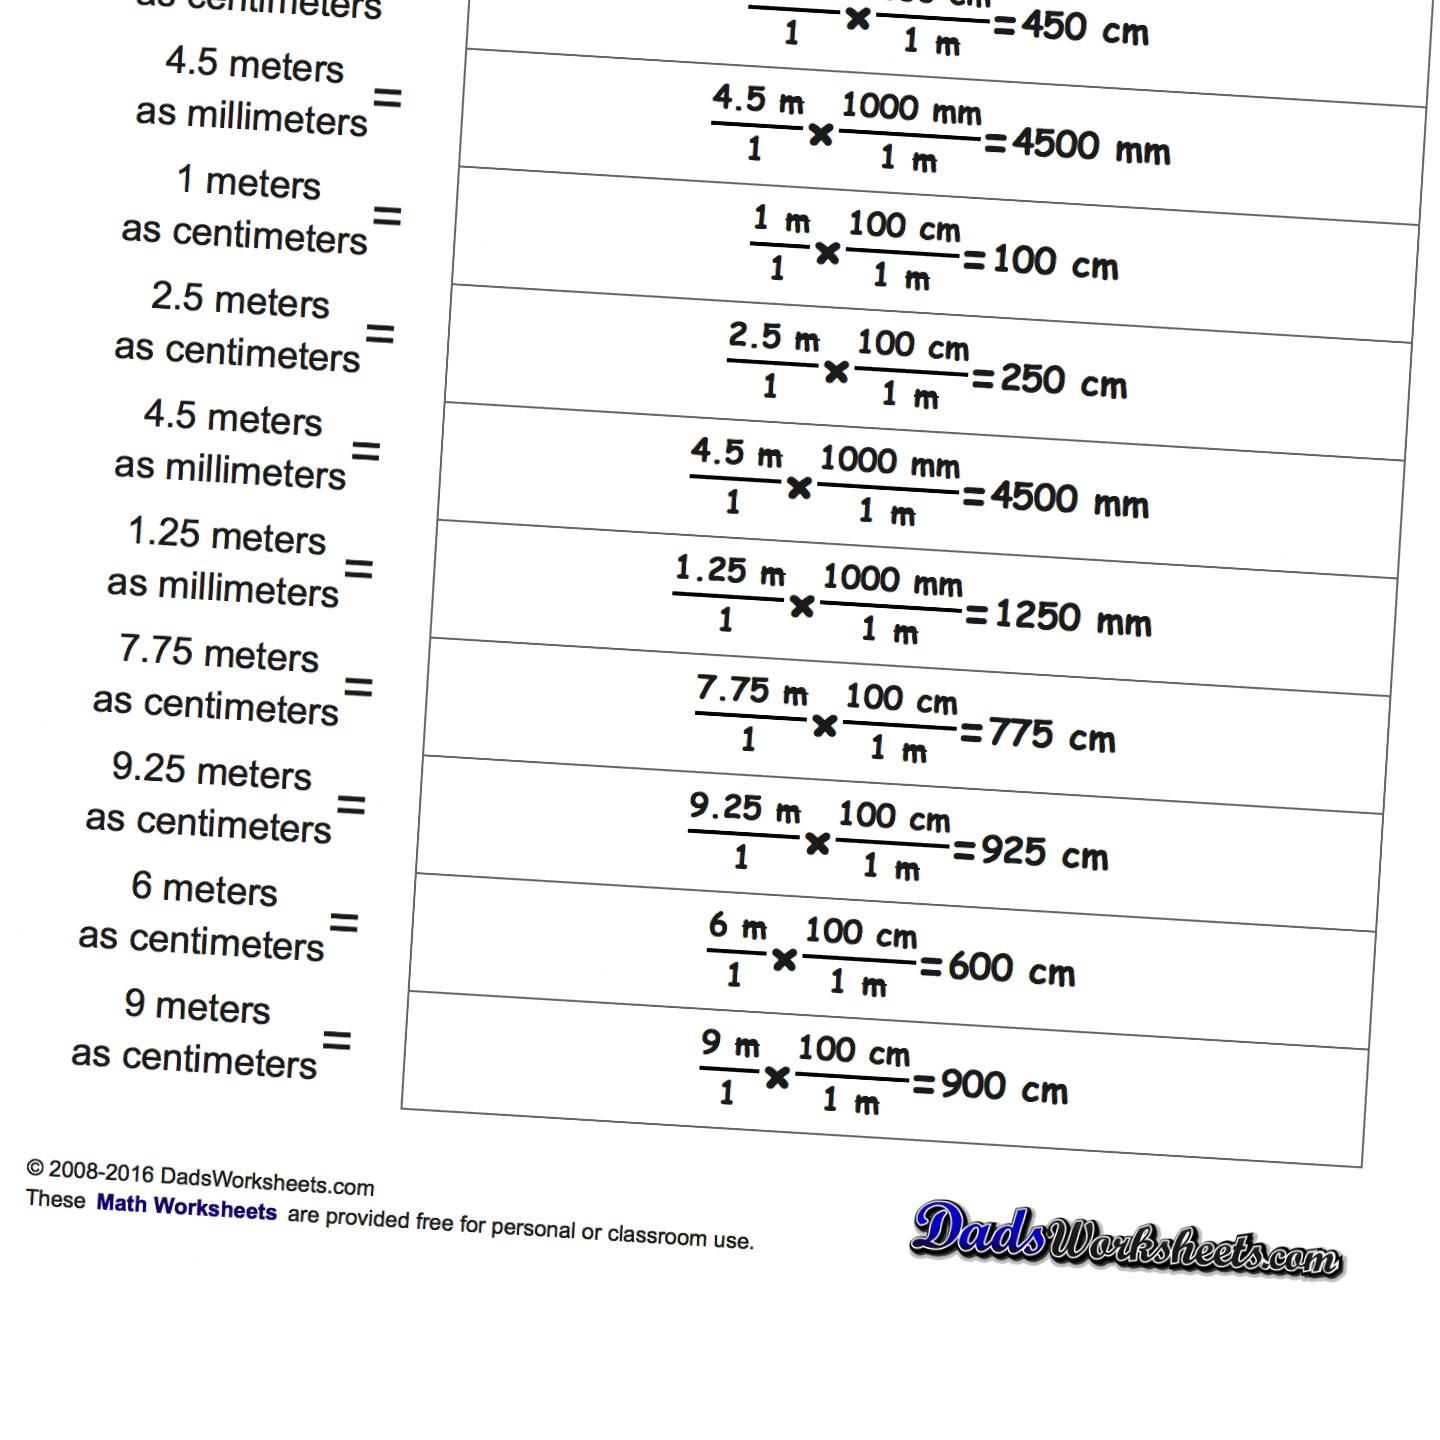 worksheet Math Worksheets And Answers metric si unit conversions this page contains links to free math worksheets for si